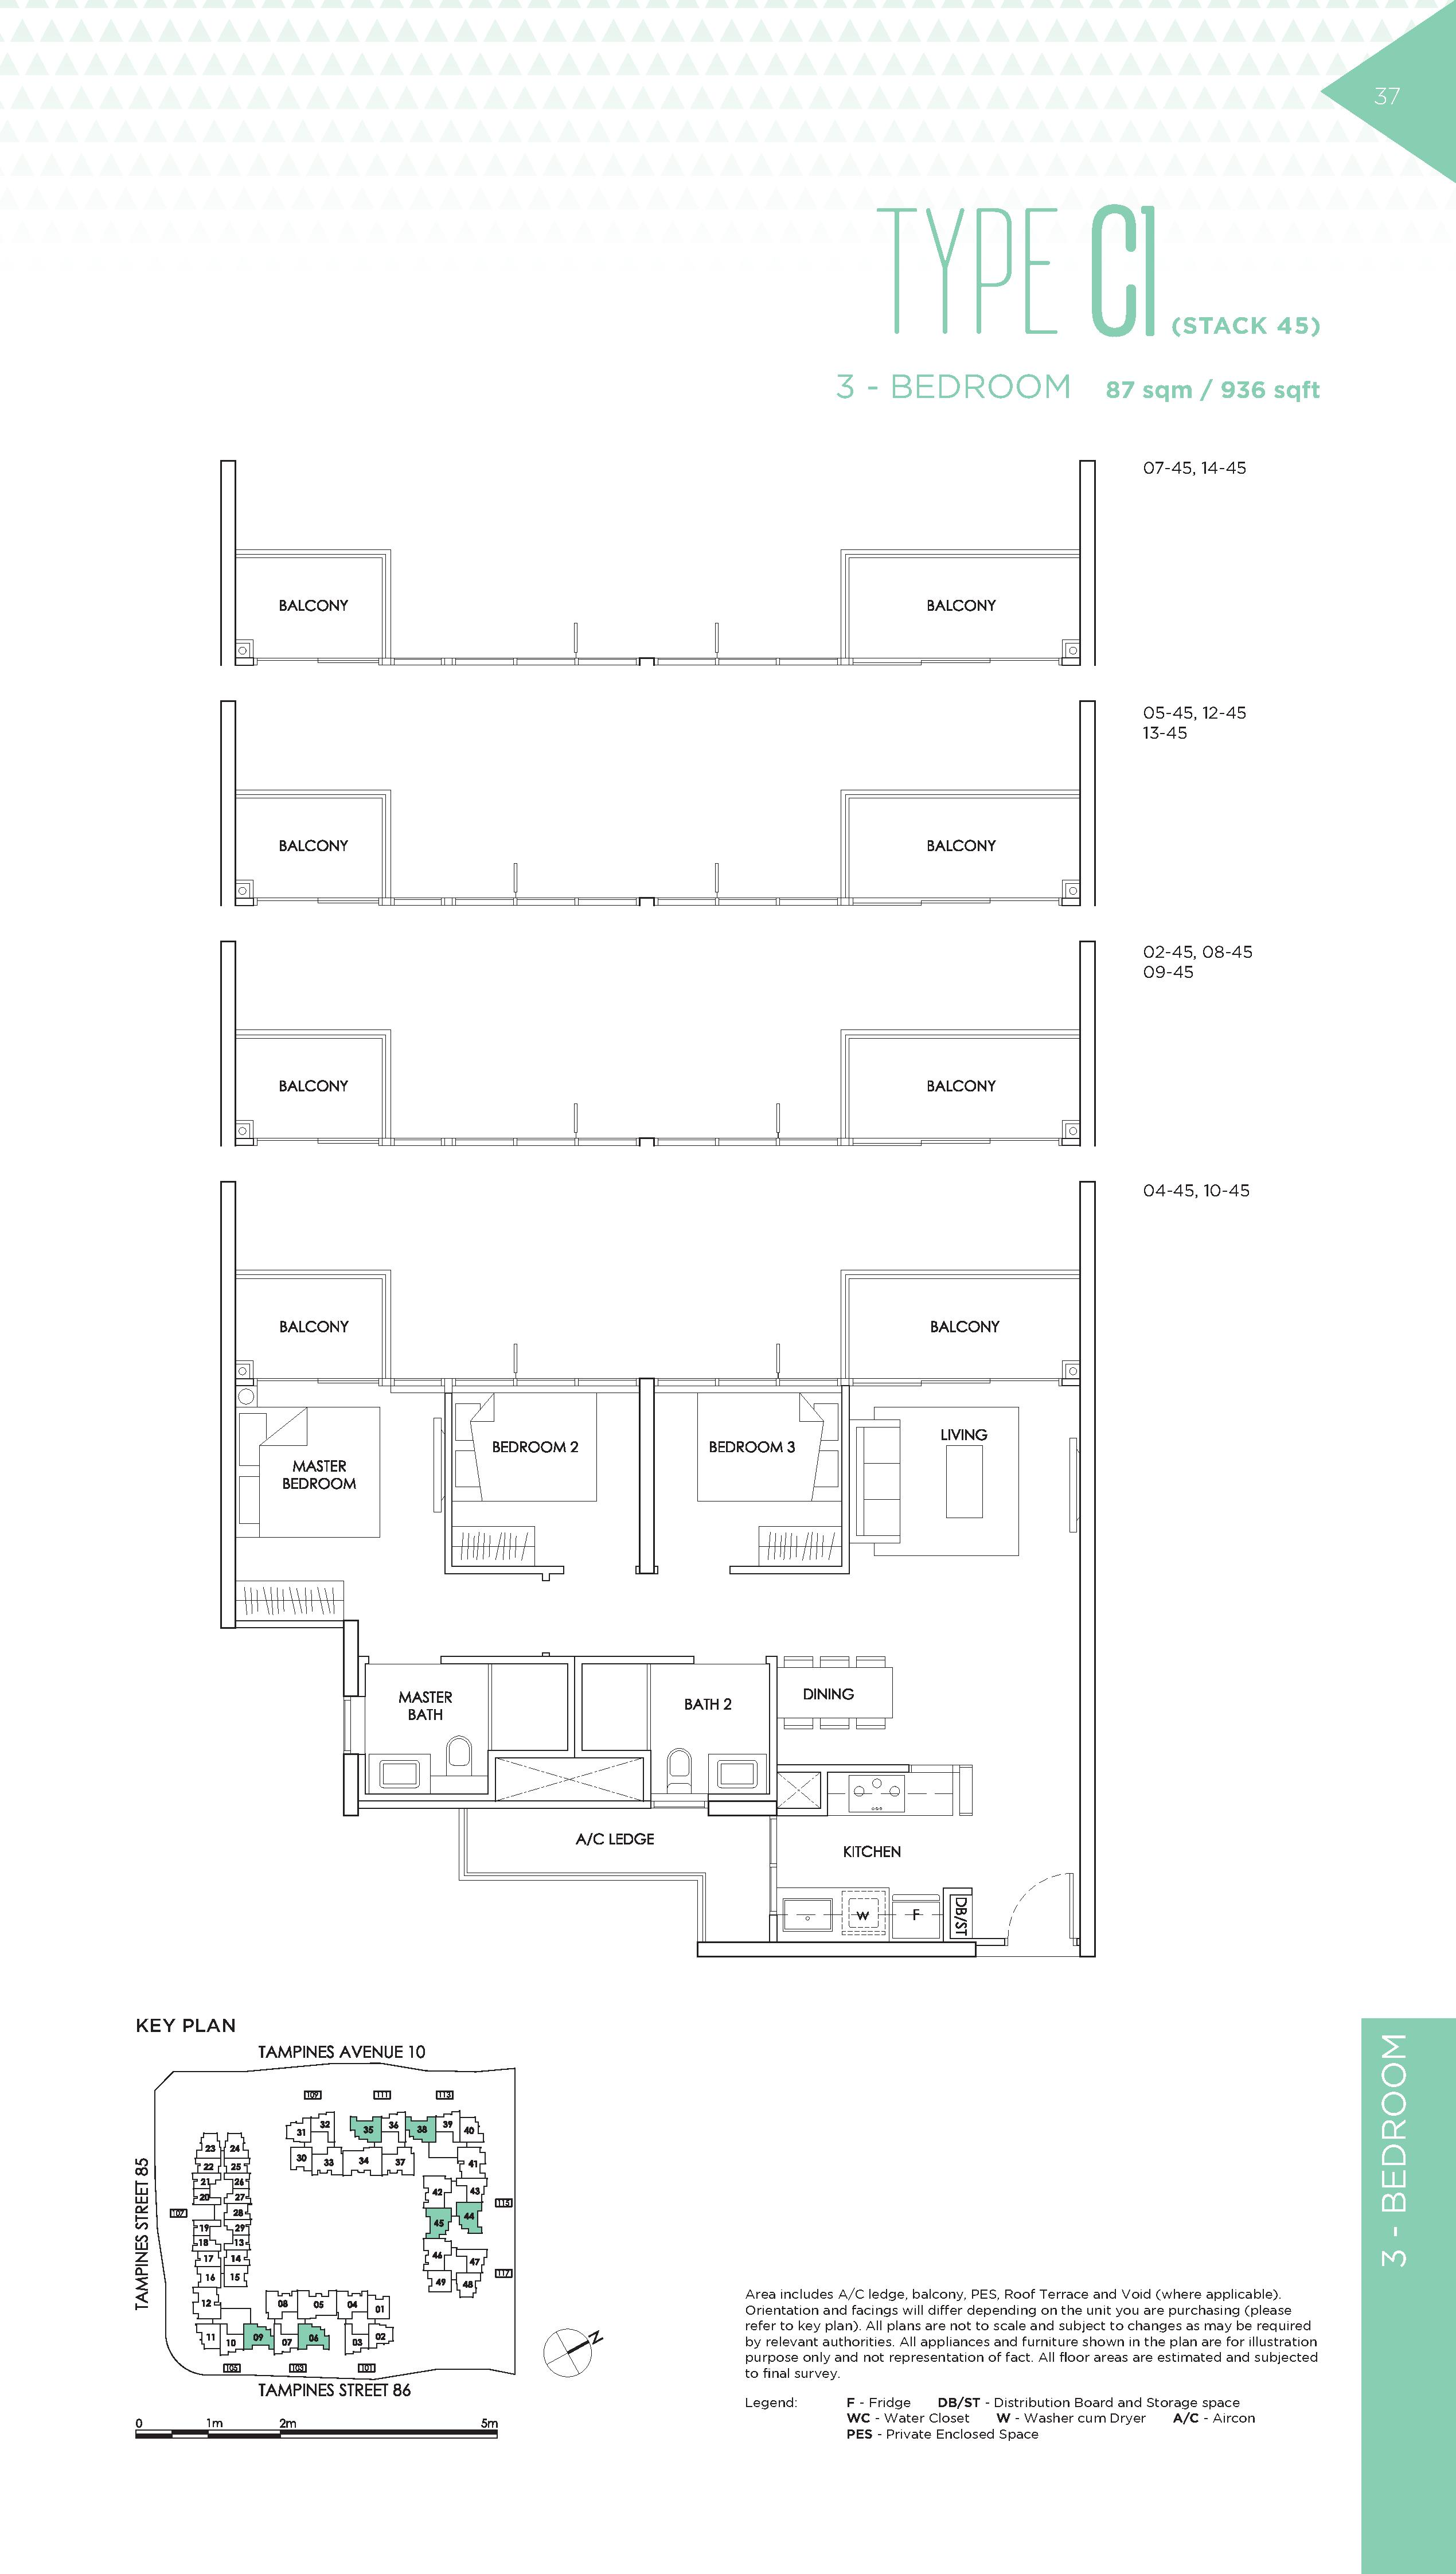 The Alps Residences 3 Bedroom Floor Plans Type C1(Stack 45)